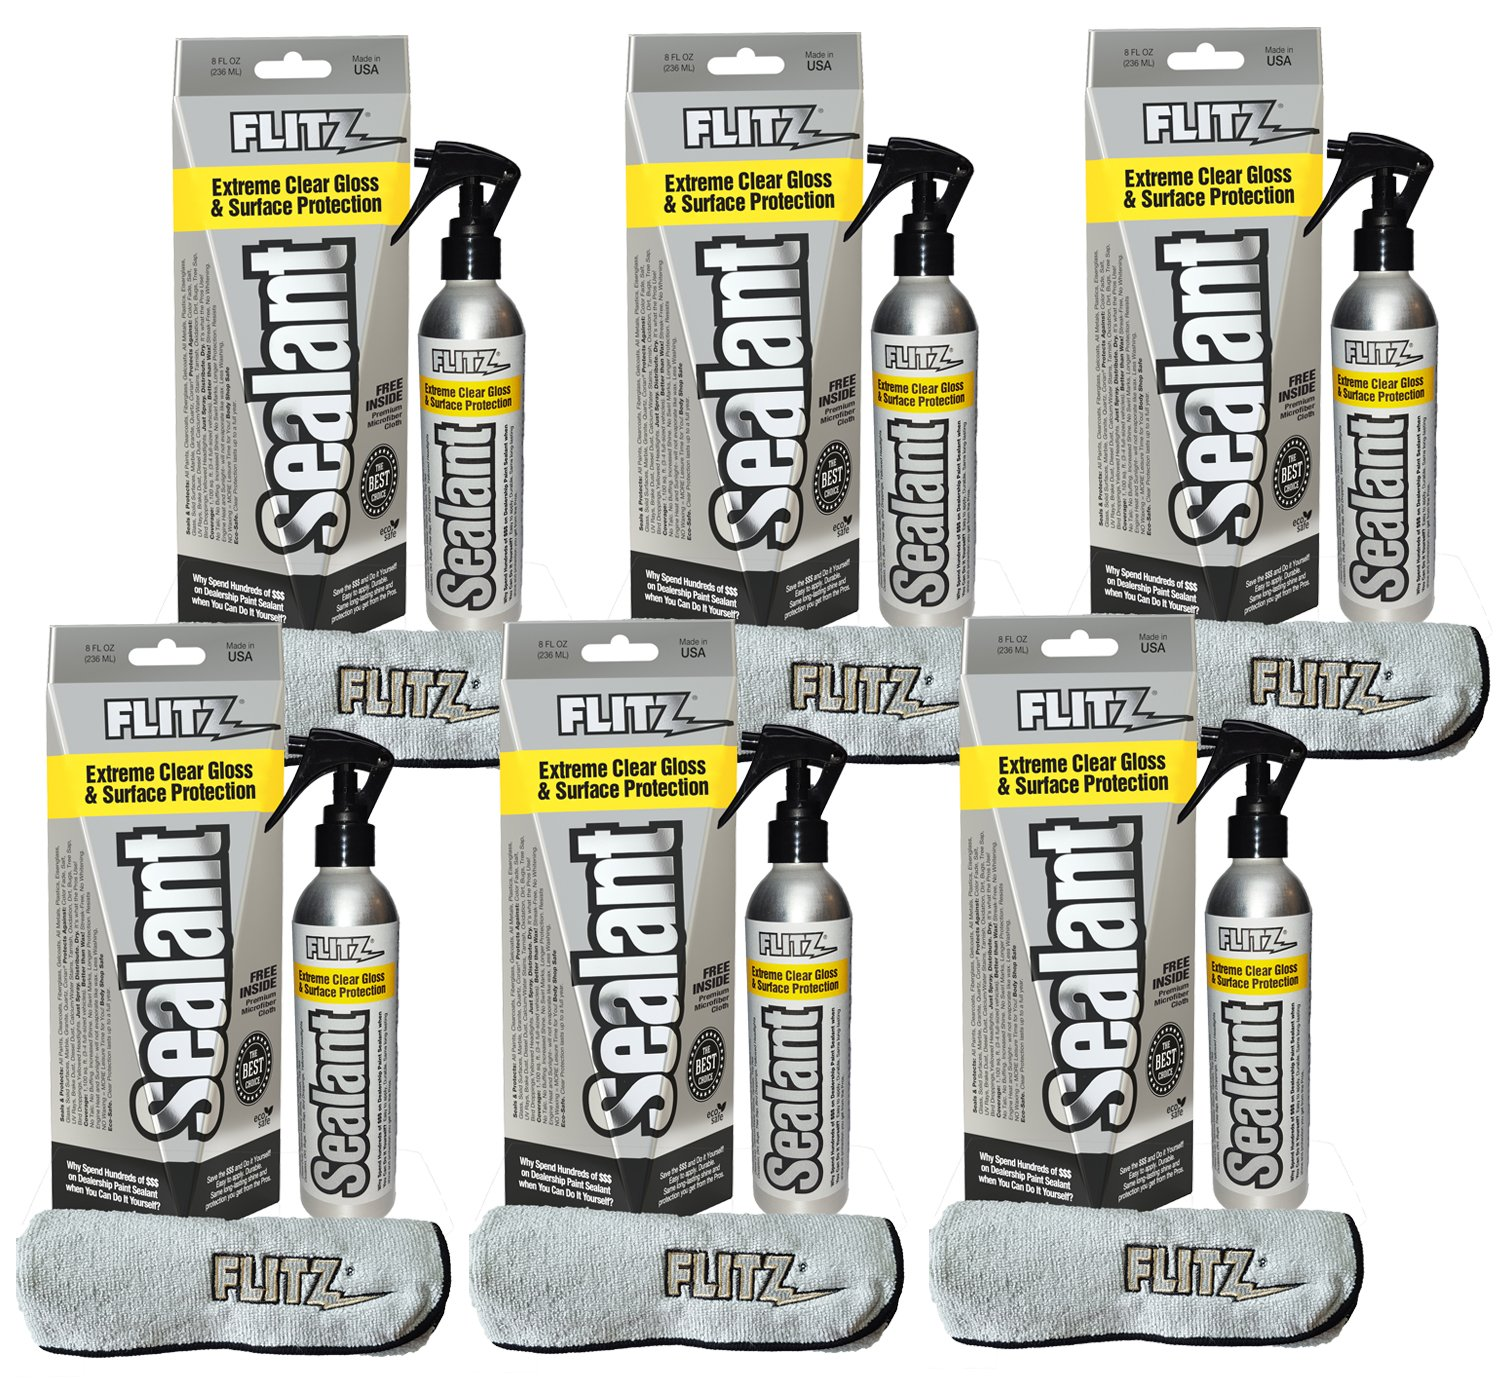 Flitz Hydrophobic Spray Sealant and Paint Protectant: Shine, Protect + Seal Clear Coat, Plastic, Glass and More, 1 Application Lasts 8 Months, Microfiber Cleaning Cloth Included USA Made 8 oz. 6 Pack